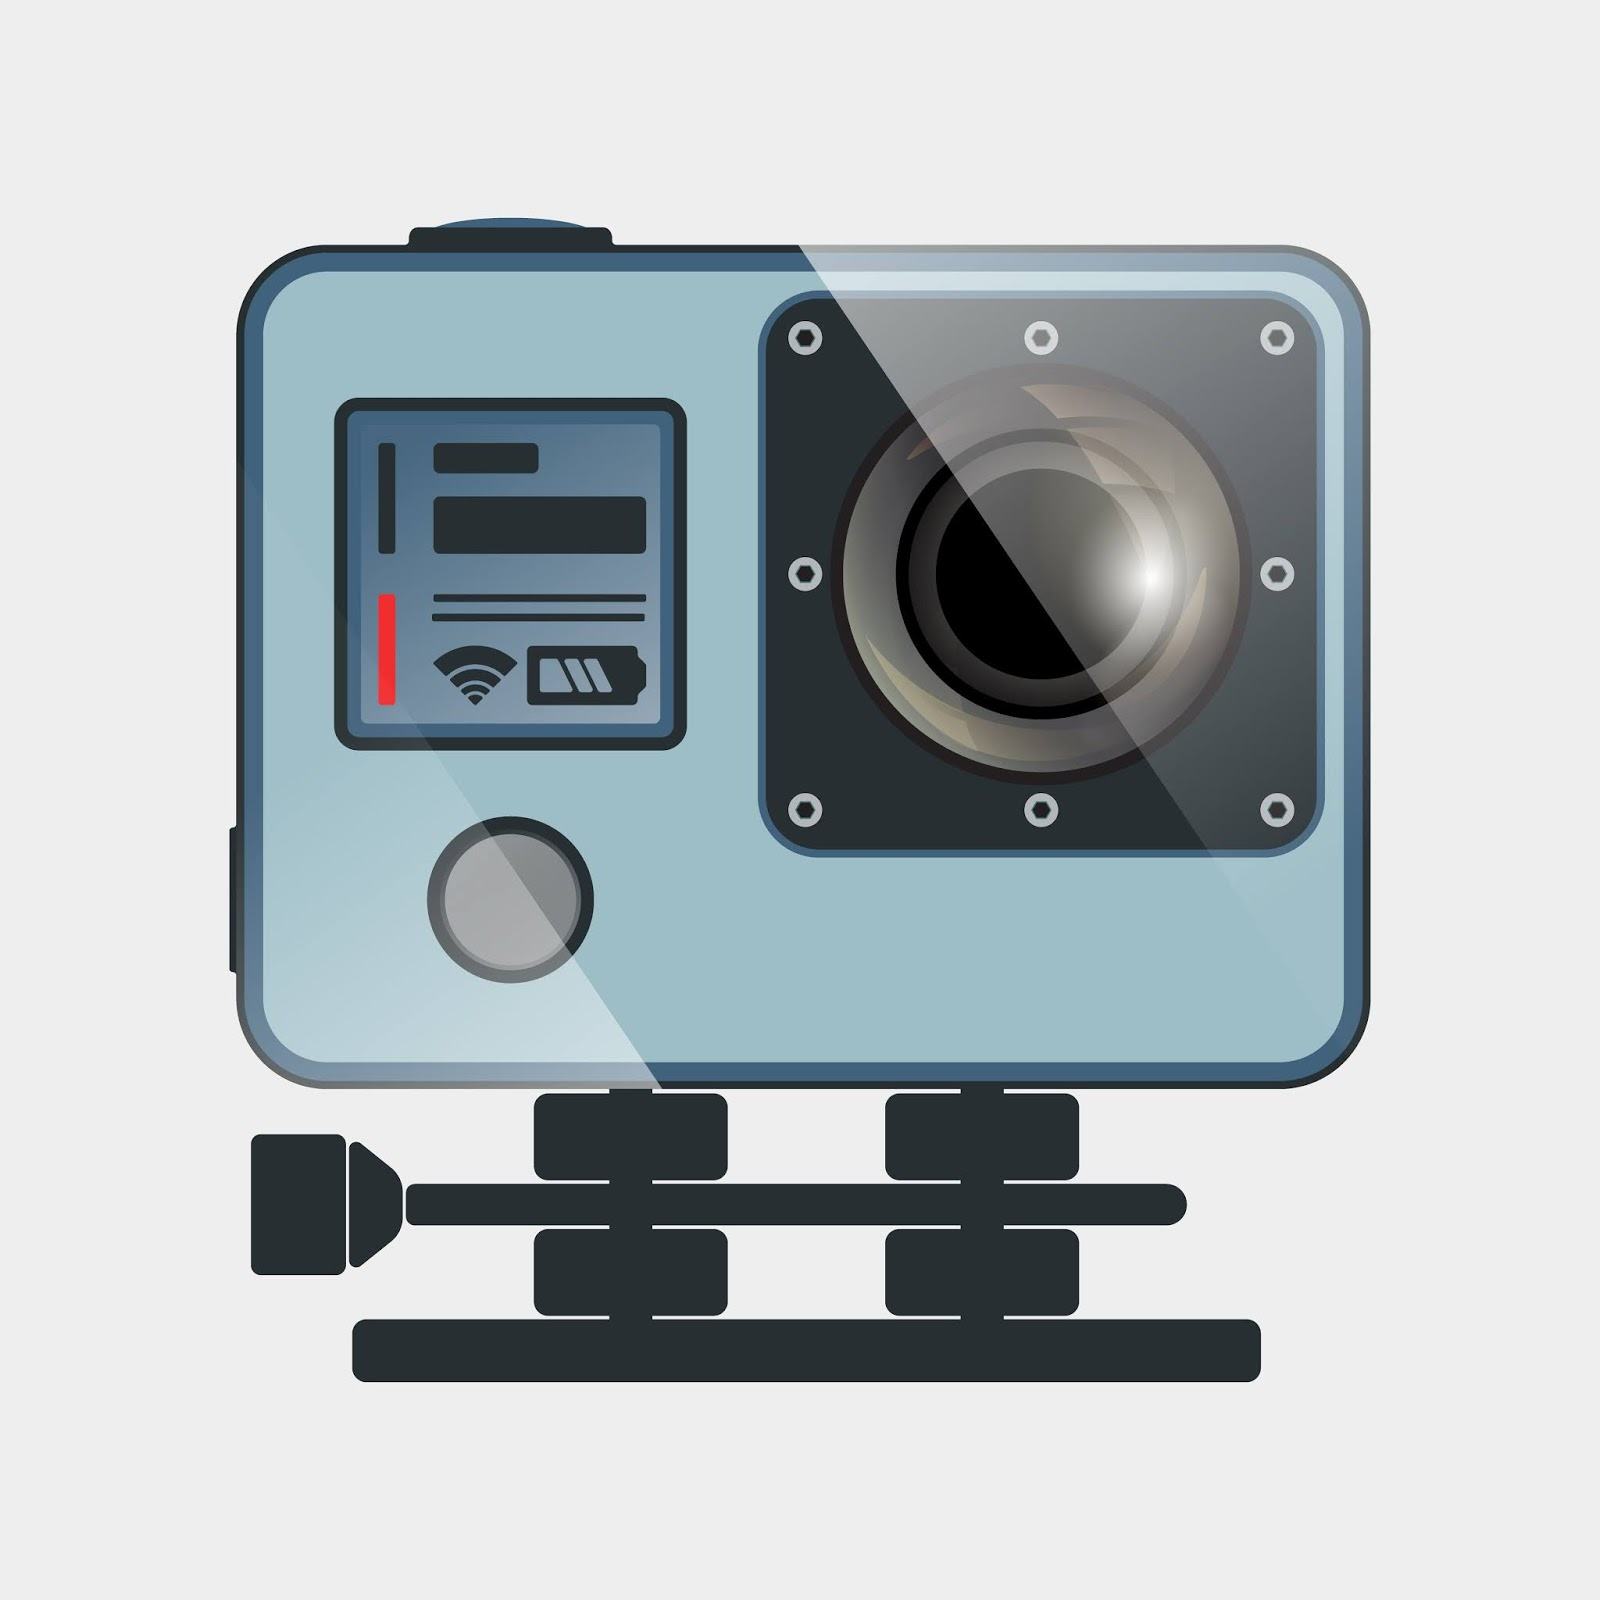 Action Camera Icon Free Download Vector CDR, AI, EPS and PNG Formats